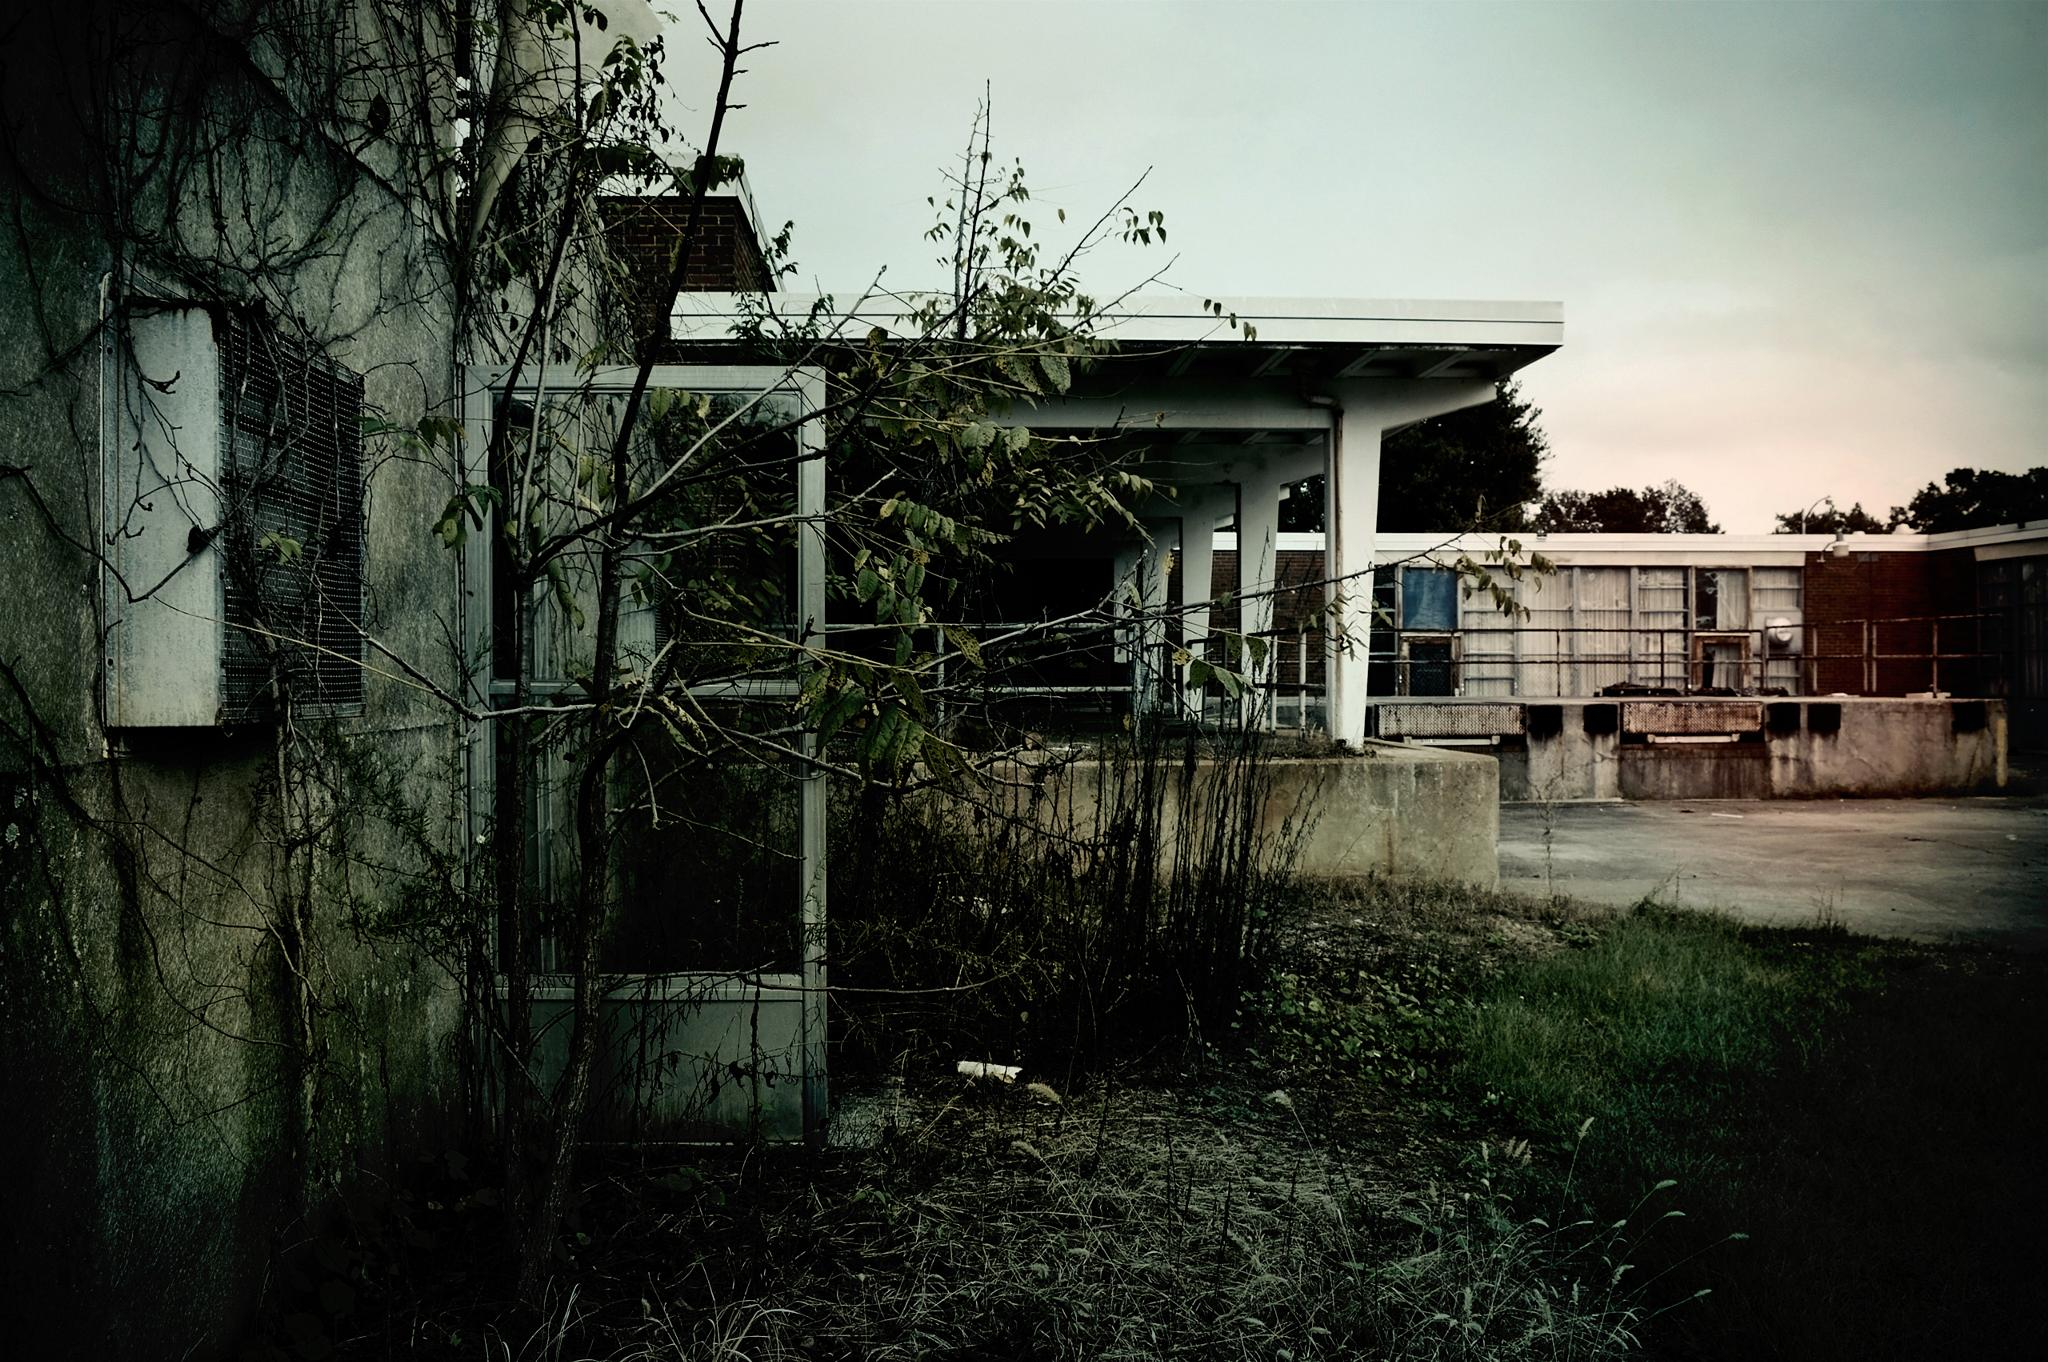 Urban Remains by Byrd's Eye Photography